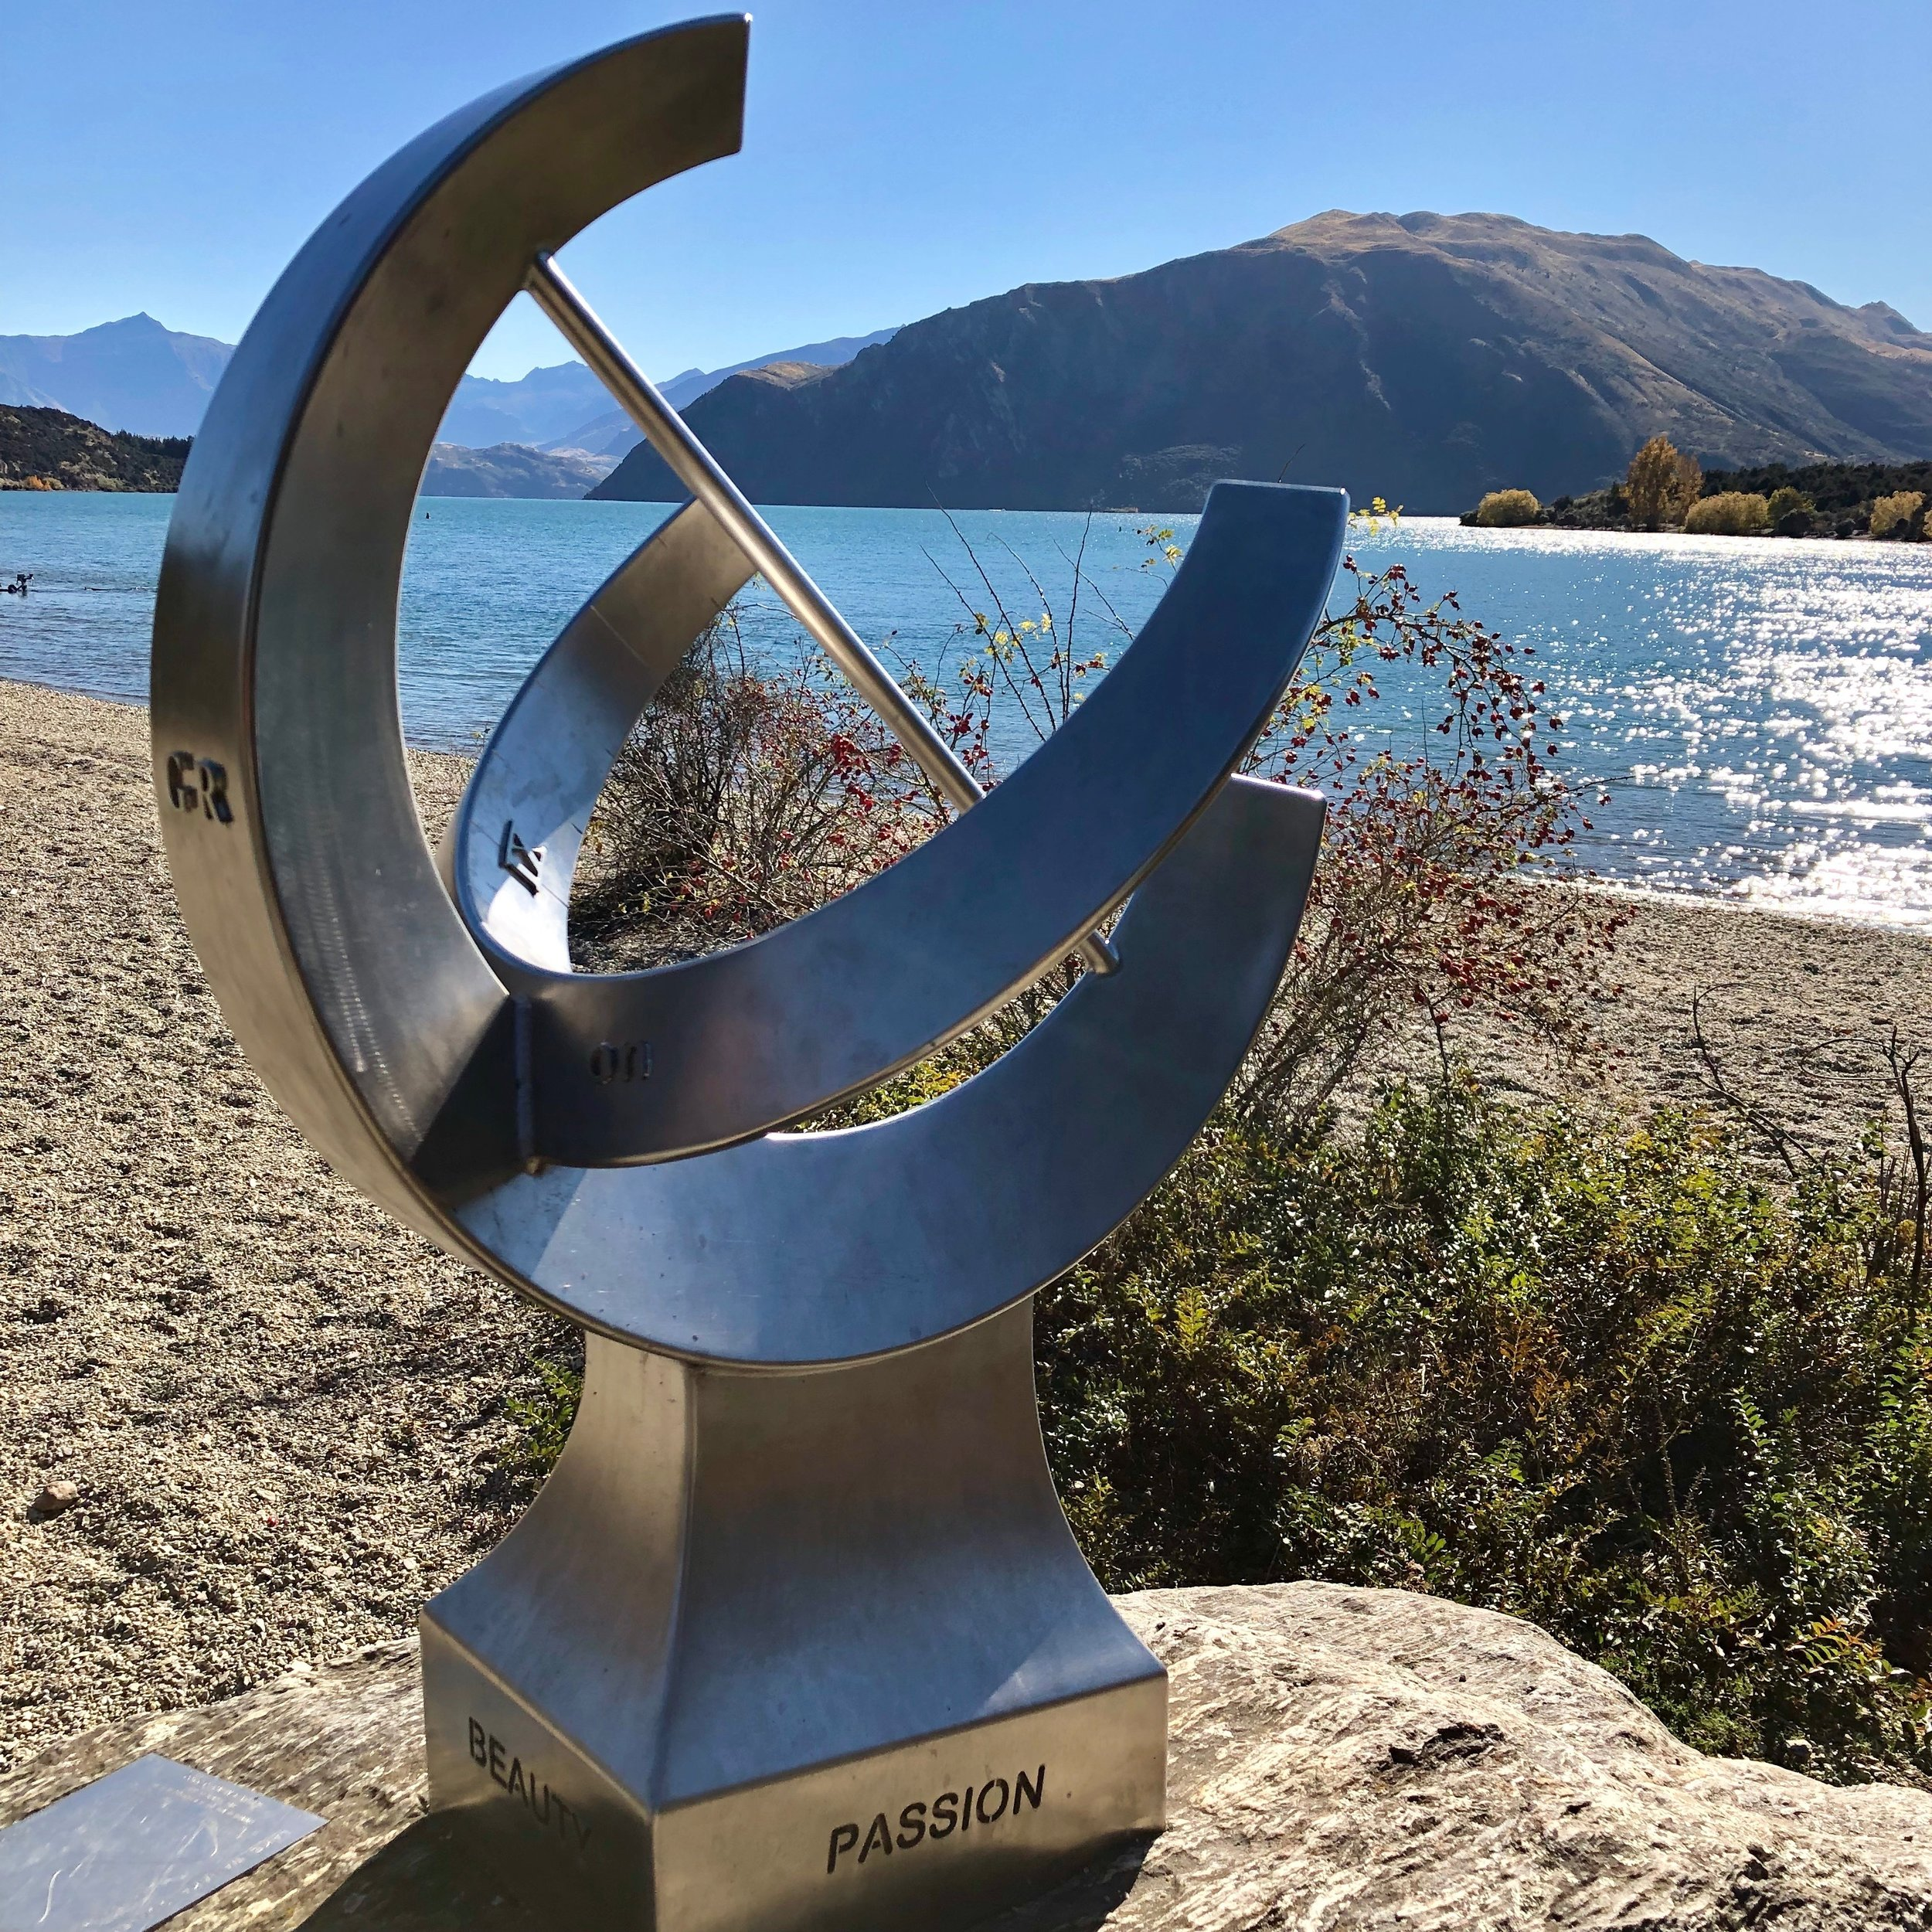 This beautiful sculpture on the Dean's Bank trail reads 'beauty, passion, love, laughter' which pretty nicely sums up our love affair with New Zealand.